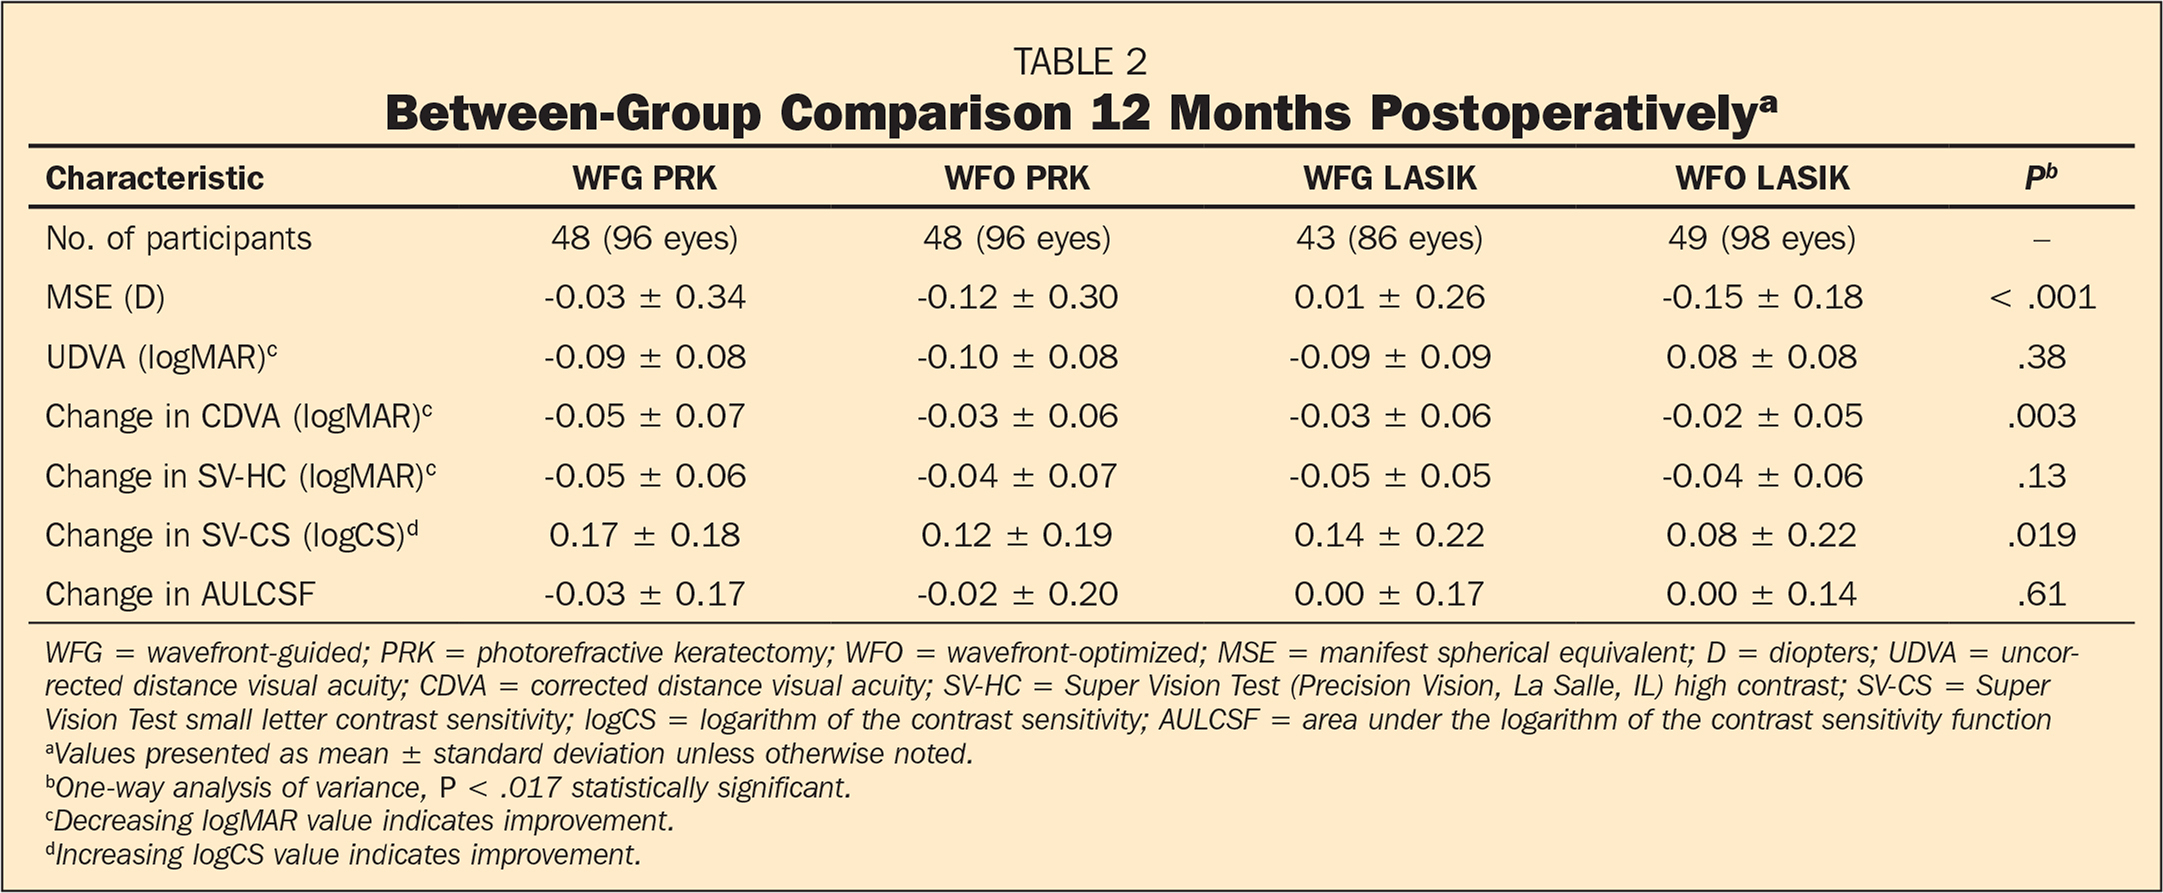 Between-Group Comparison 12 Months Postoperativelya